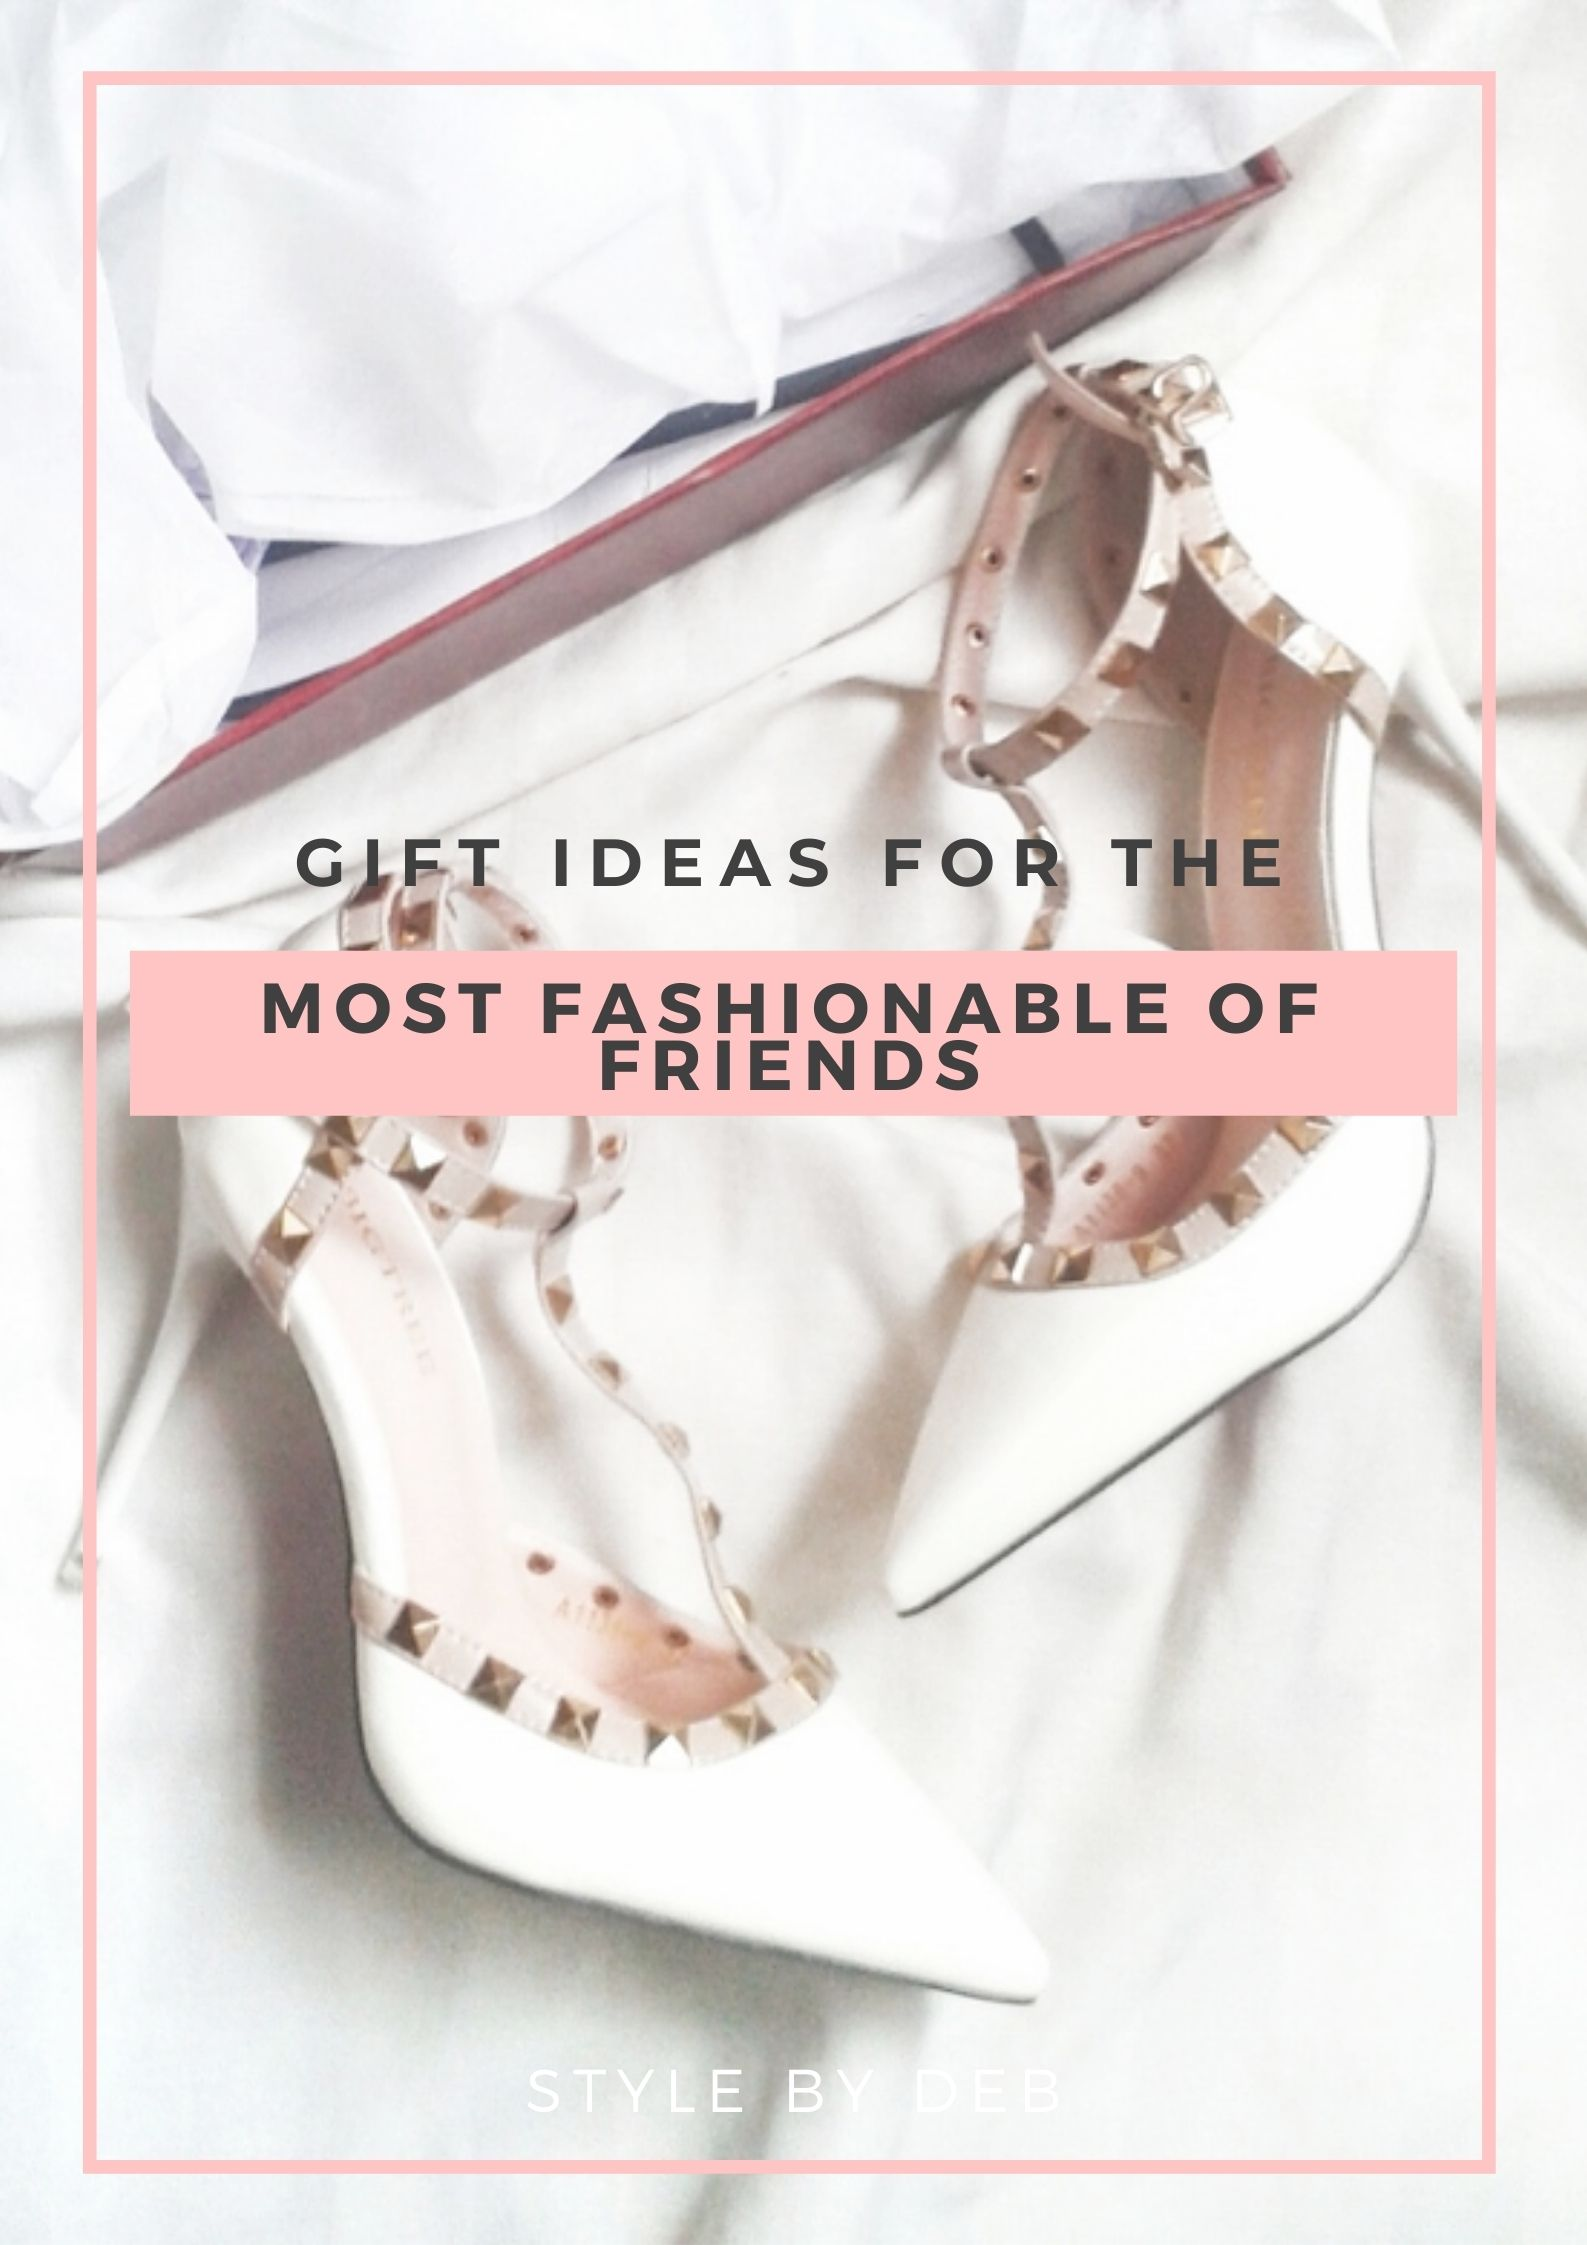 gift ideas for the most fashionable of friends